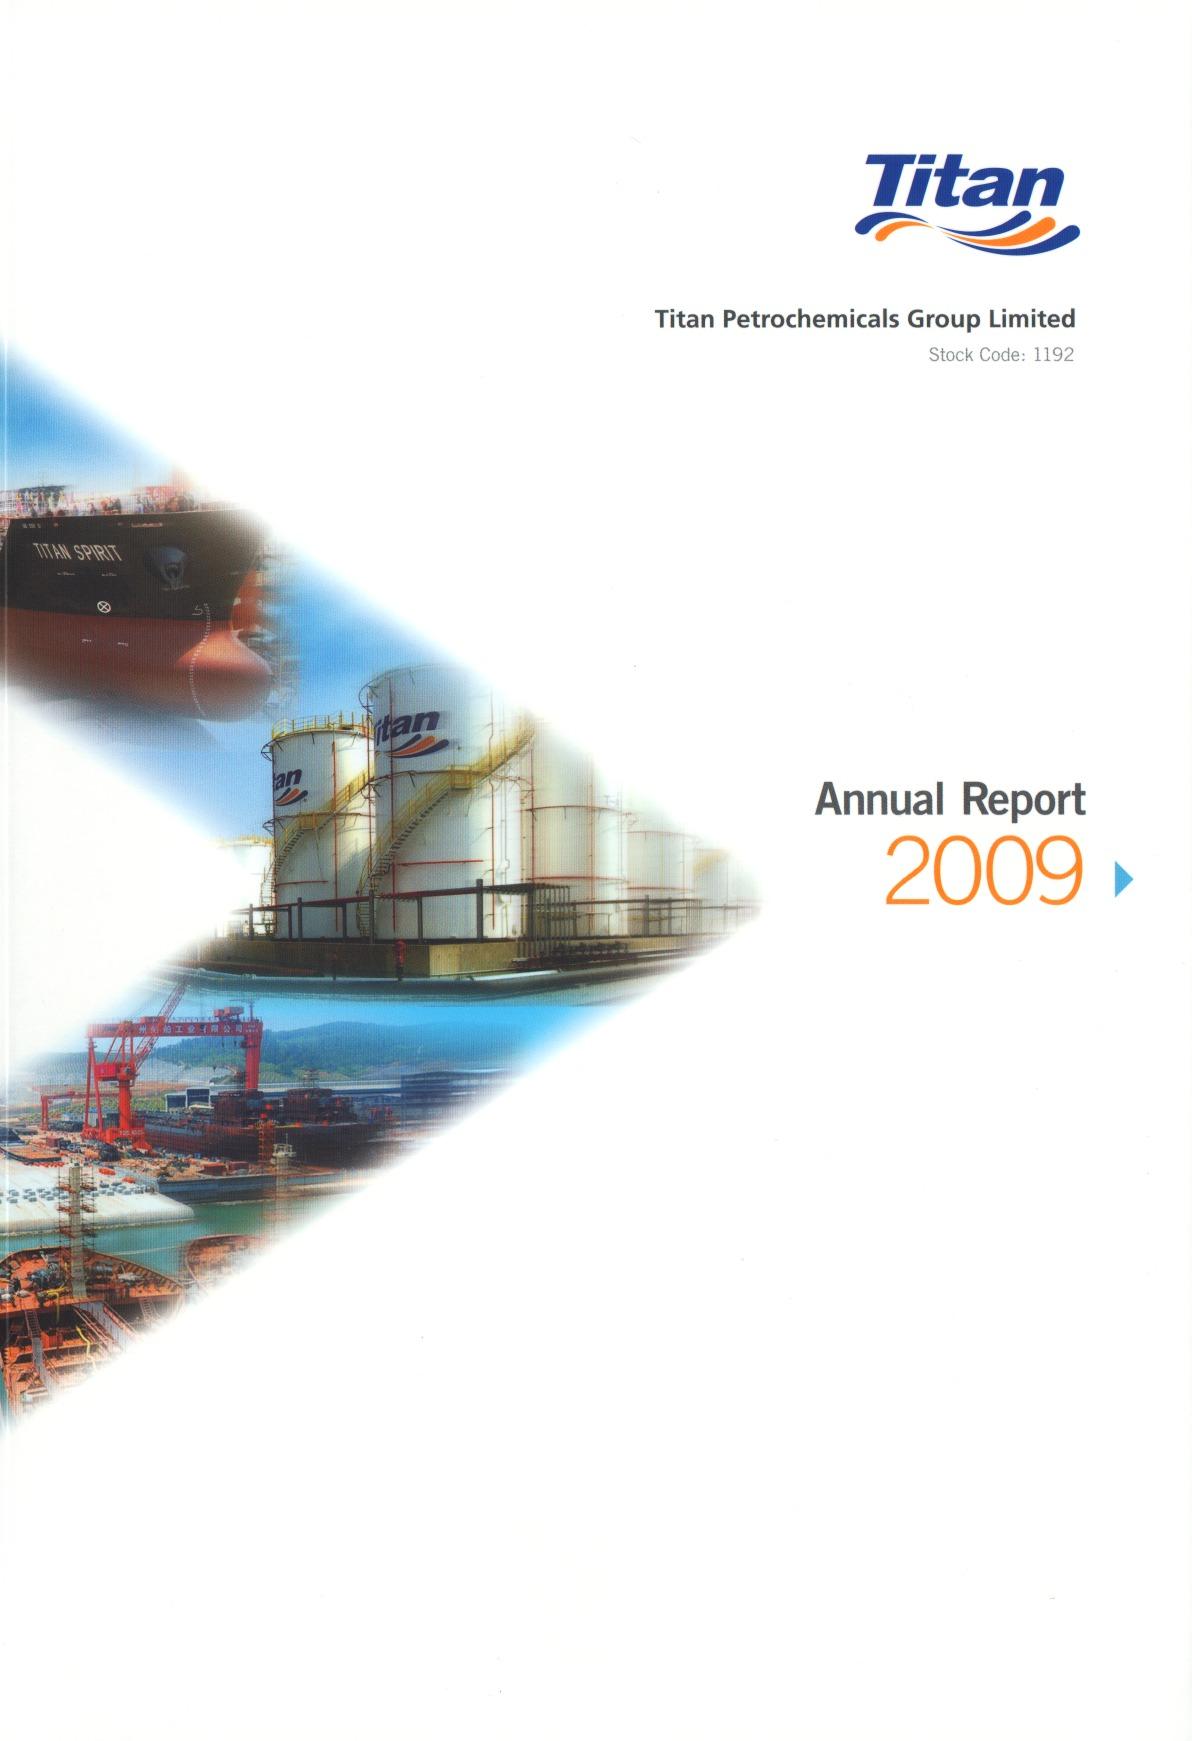 Lacp 2009 Vision Awards Annual Report Competition